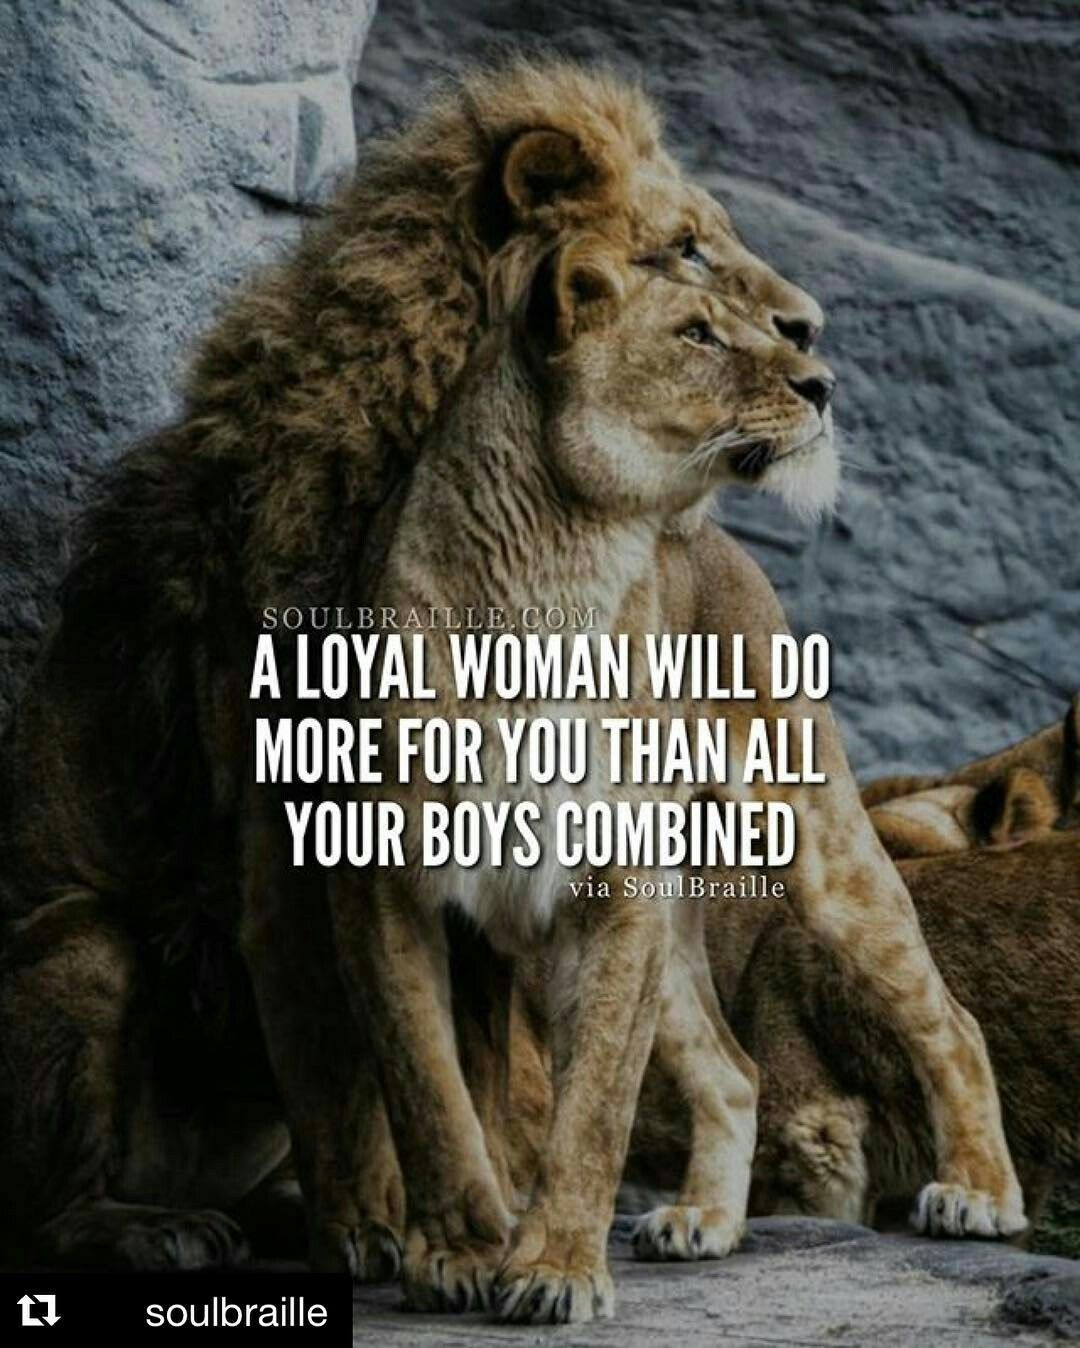 Got that right | Leo quotes | Lion, lioness, Animals